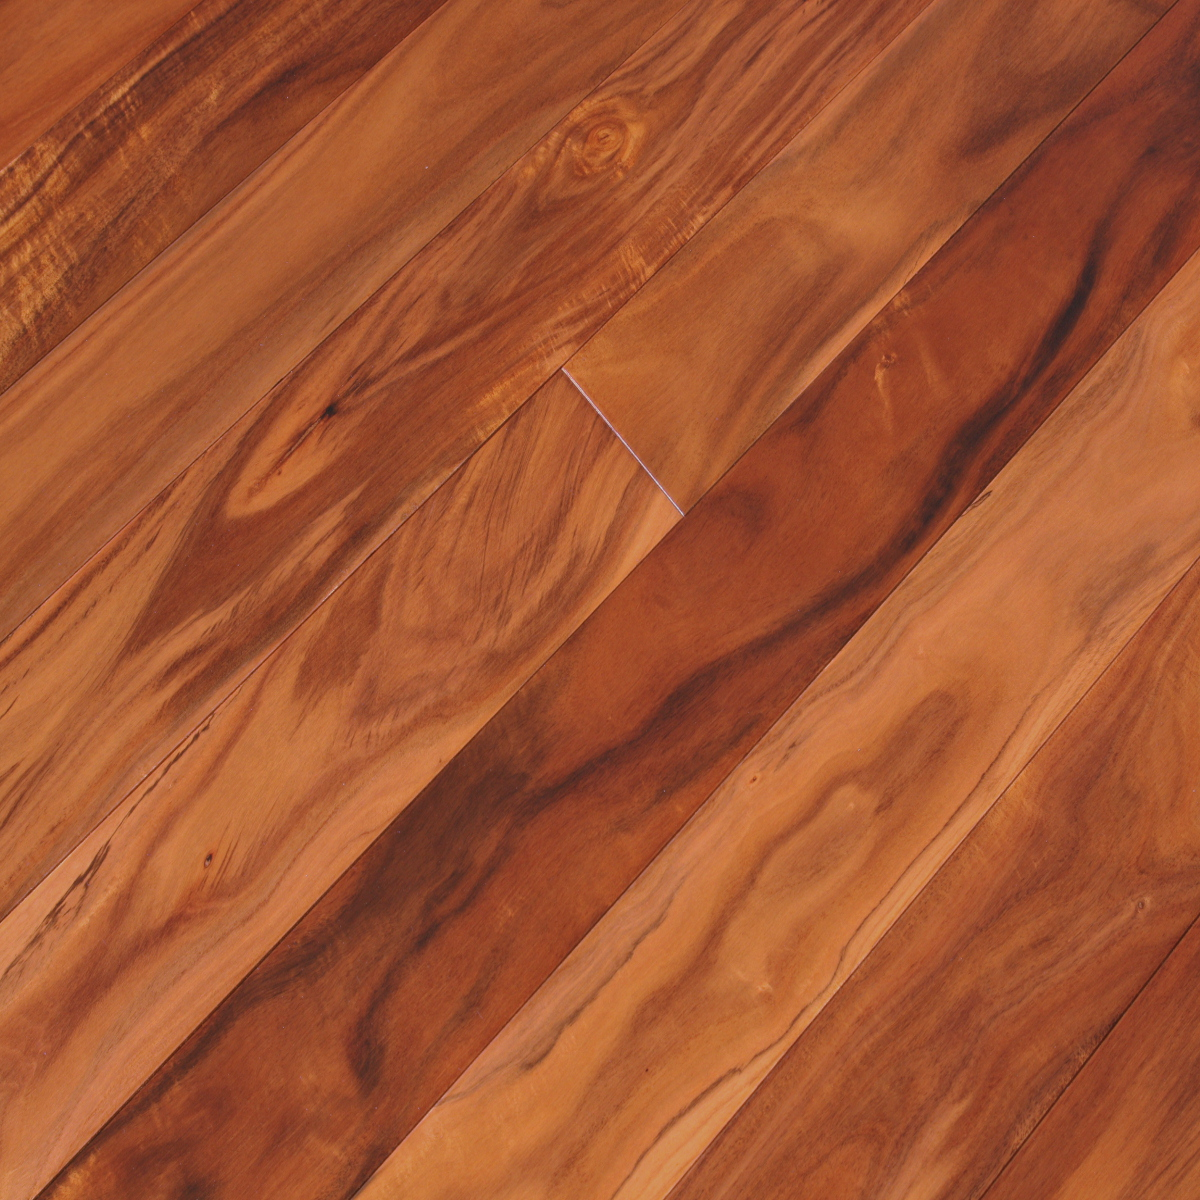 Acacia Golden Sagebrush Plank Hardwood Flooring